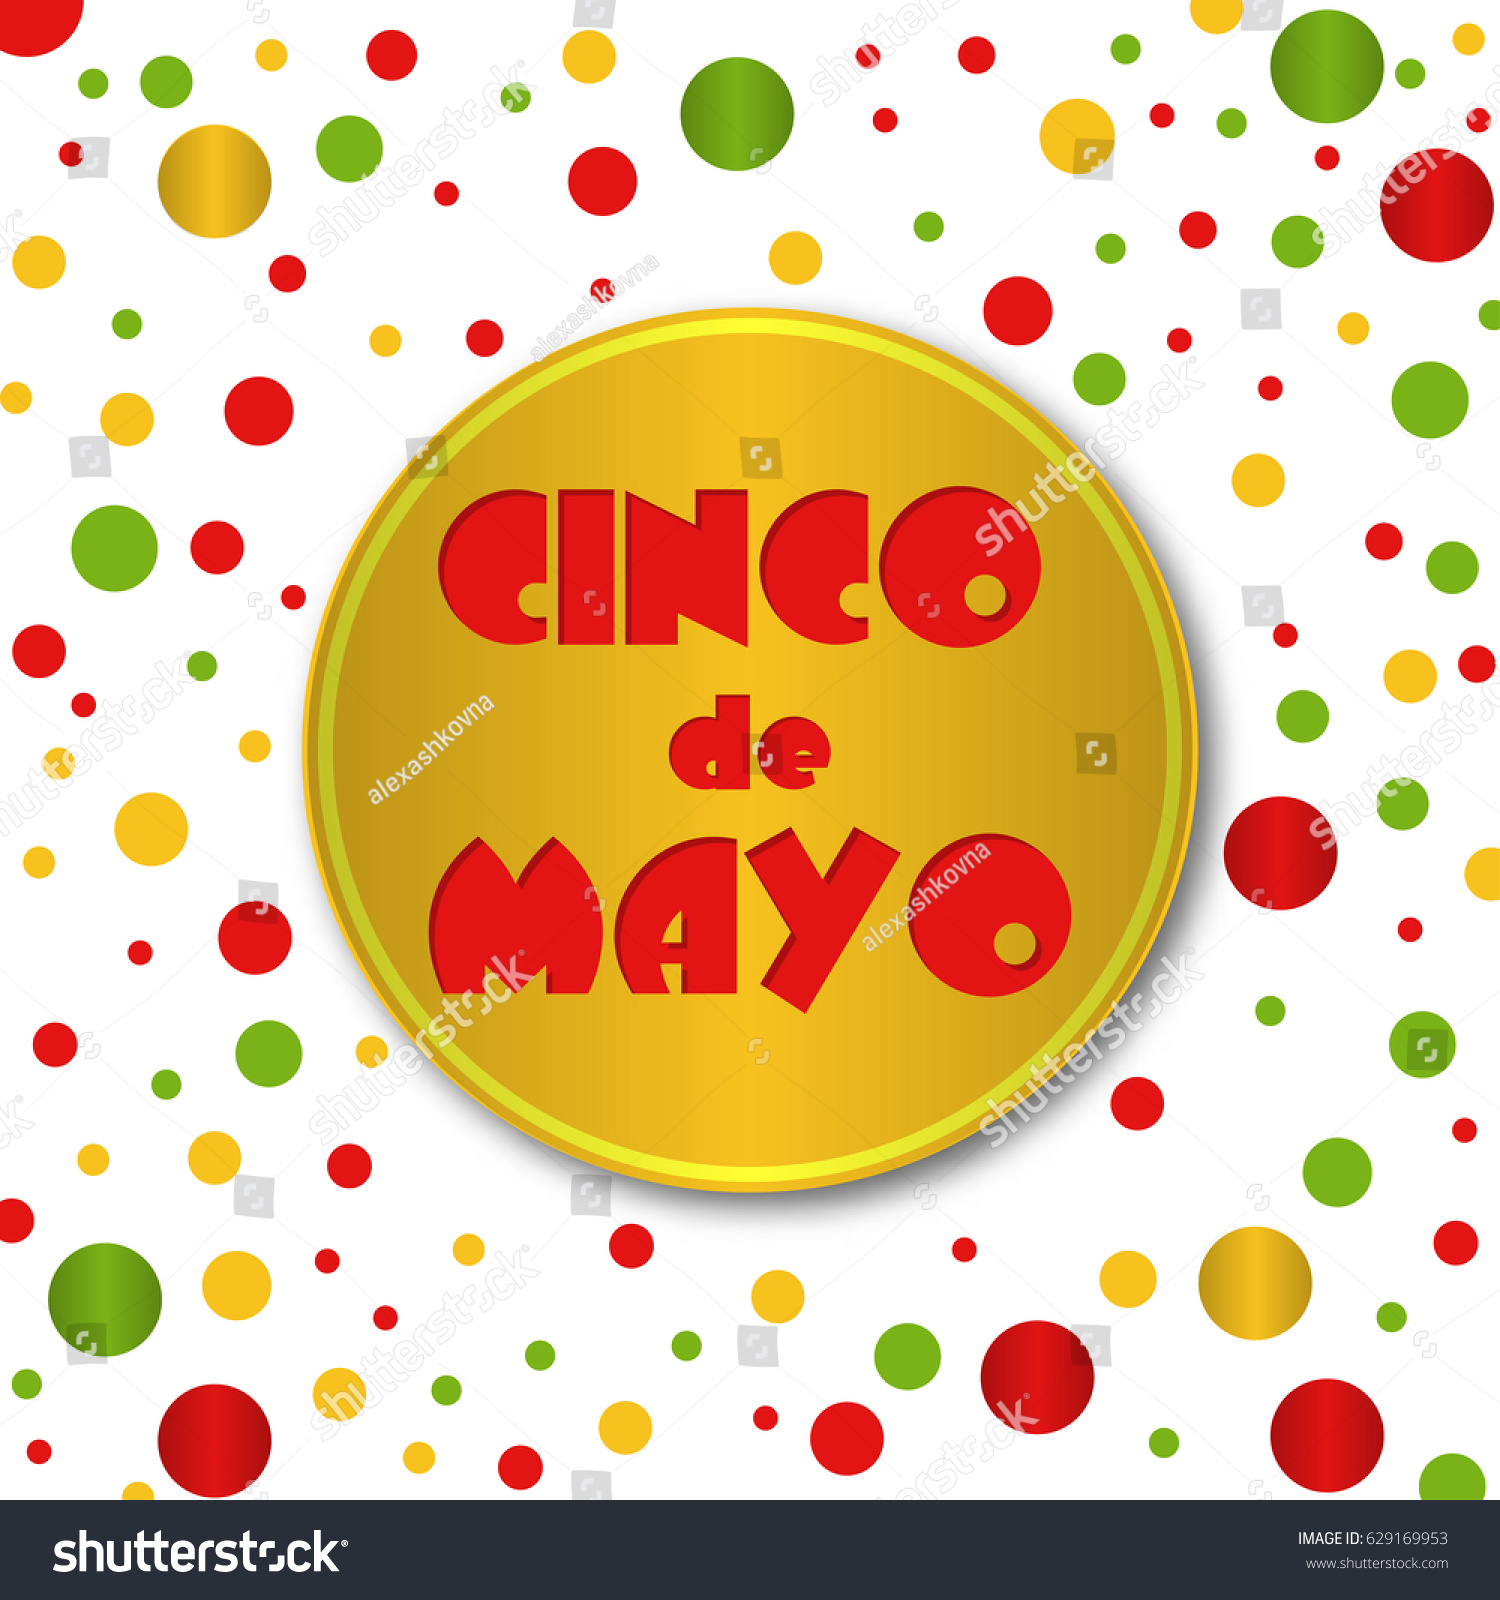 cinco de mayo 5th may poster stock vector 629169953 shutterstock